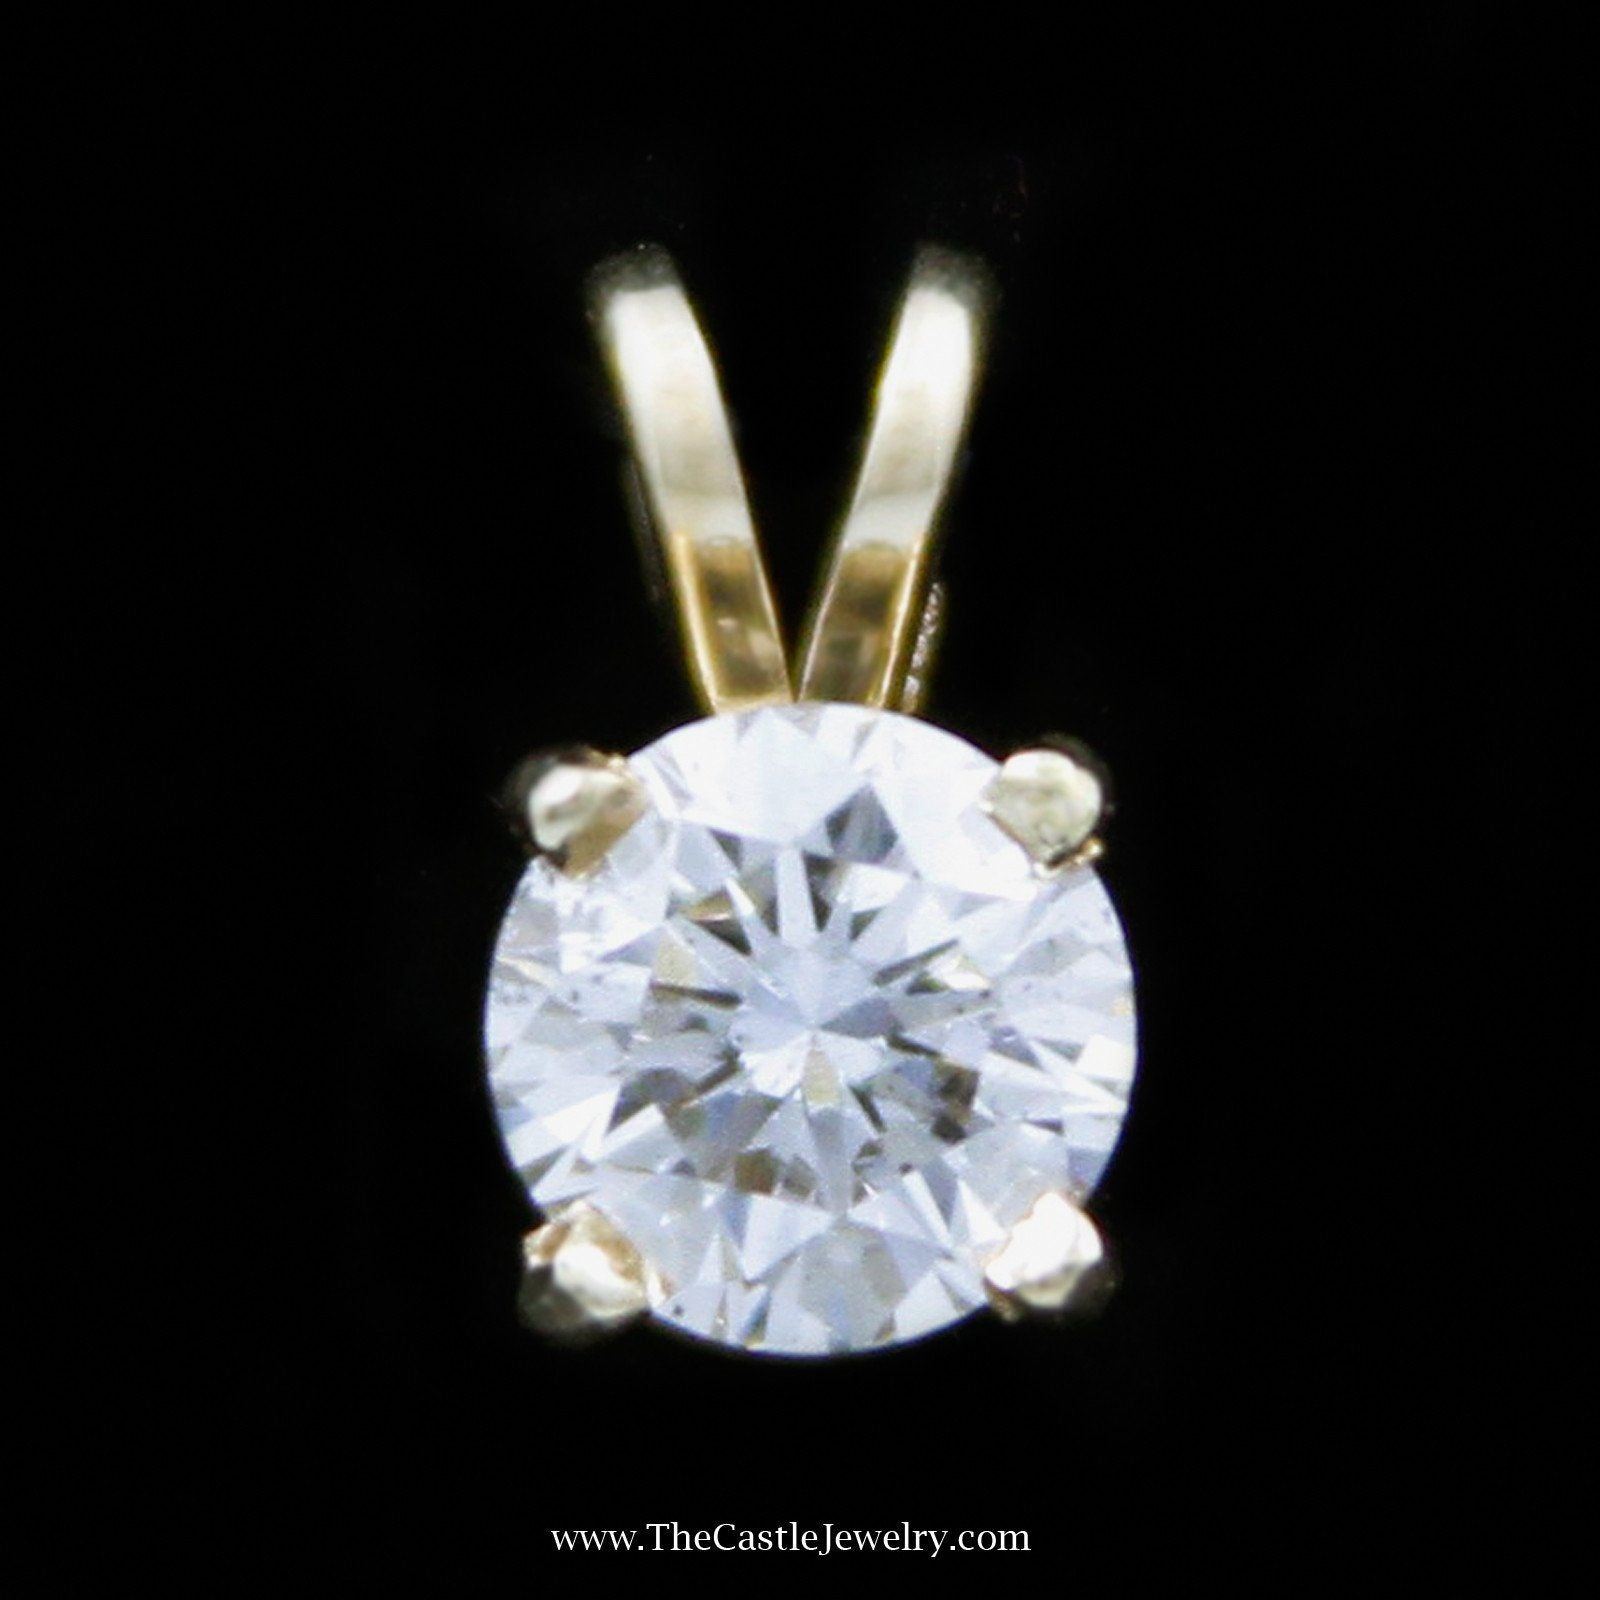 Beautiful .81ct Round Brilliant Cut Solitaire Pendant SI1-H in 14K Yellow Gold